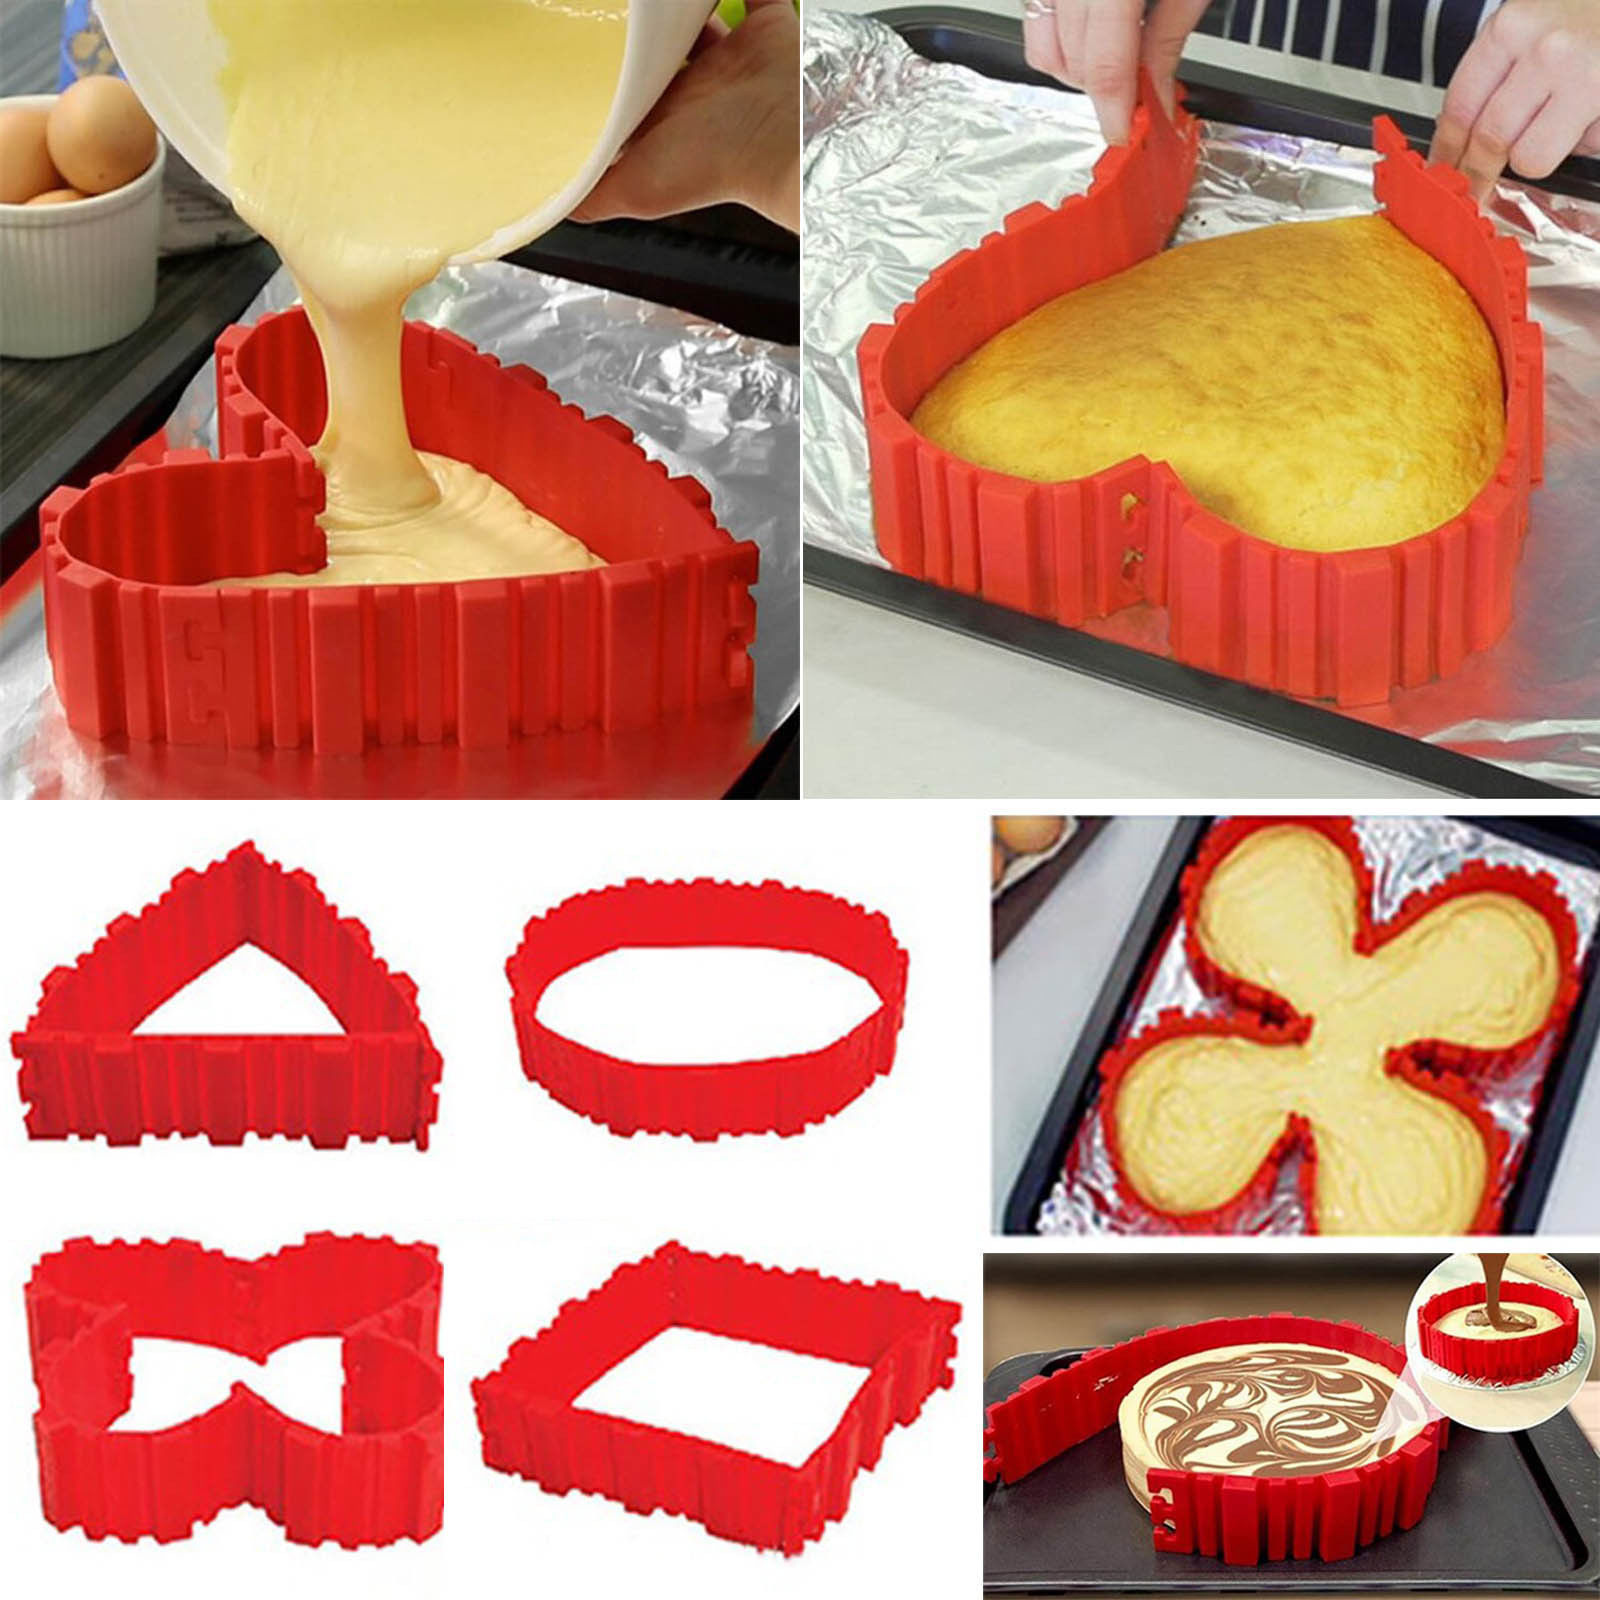 4pcs / Lot Magic Cake Mould Bake Snakes Mad Grade Silicone Pan Square Rektangulær Heart Round DIY Bake Snake Mould